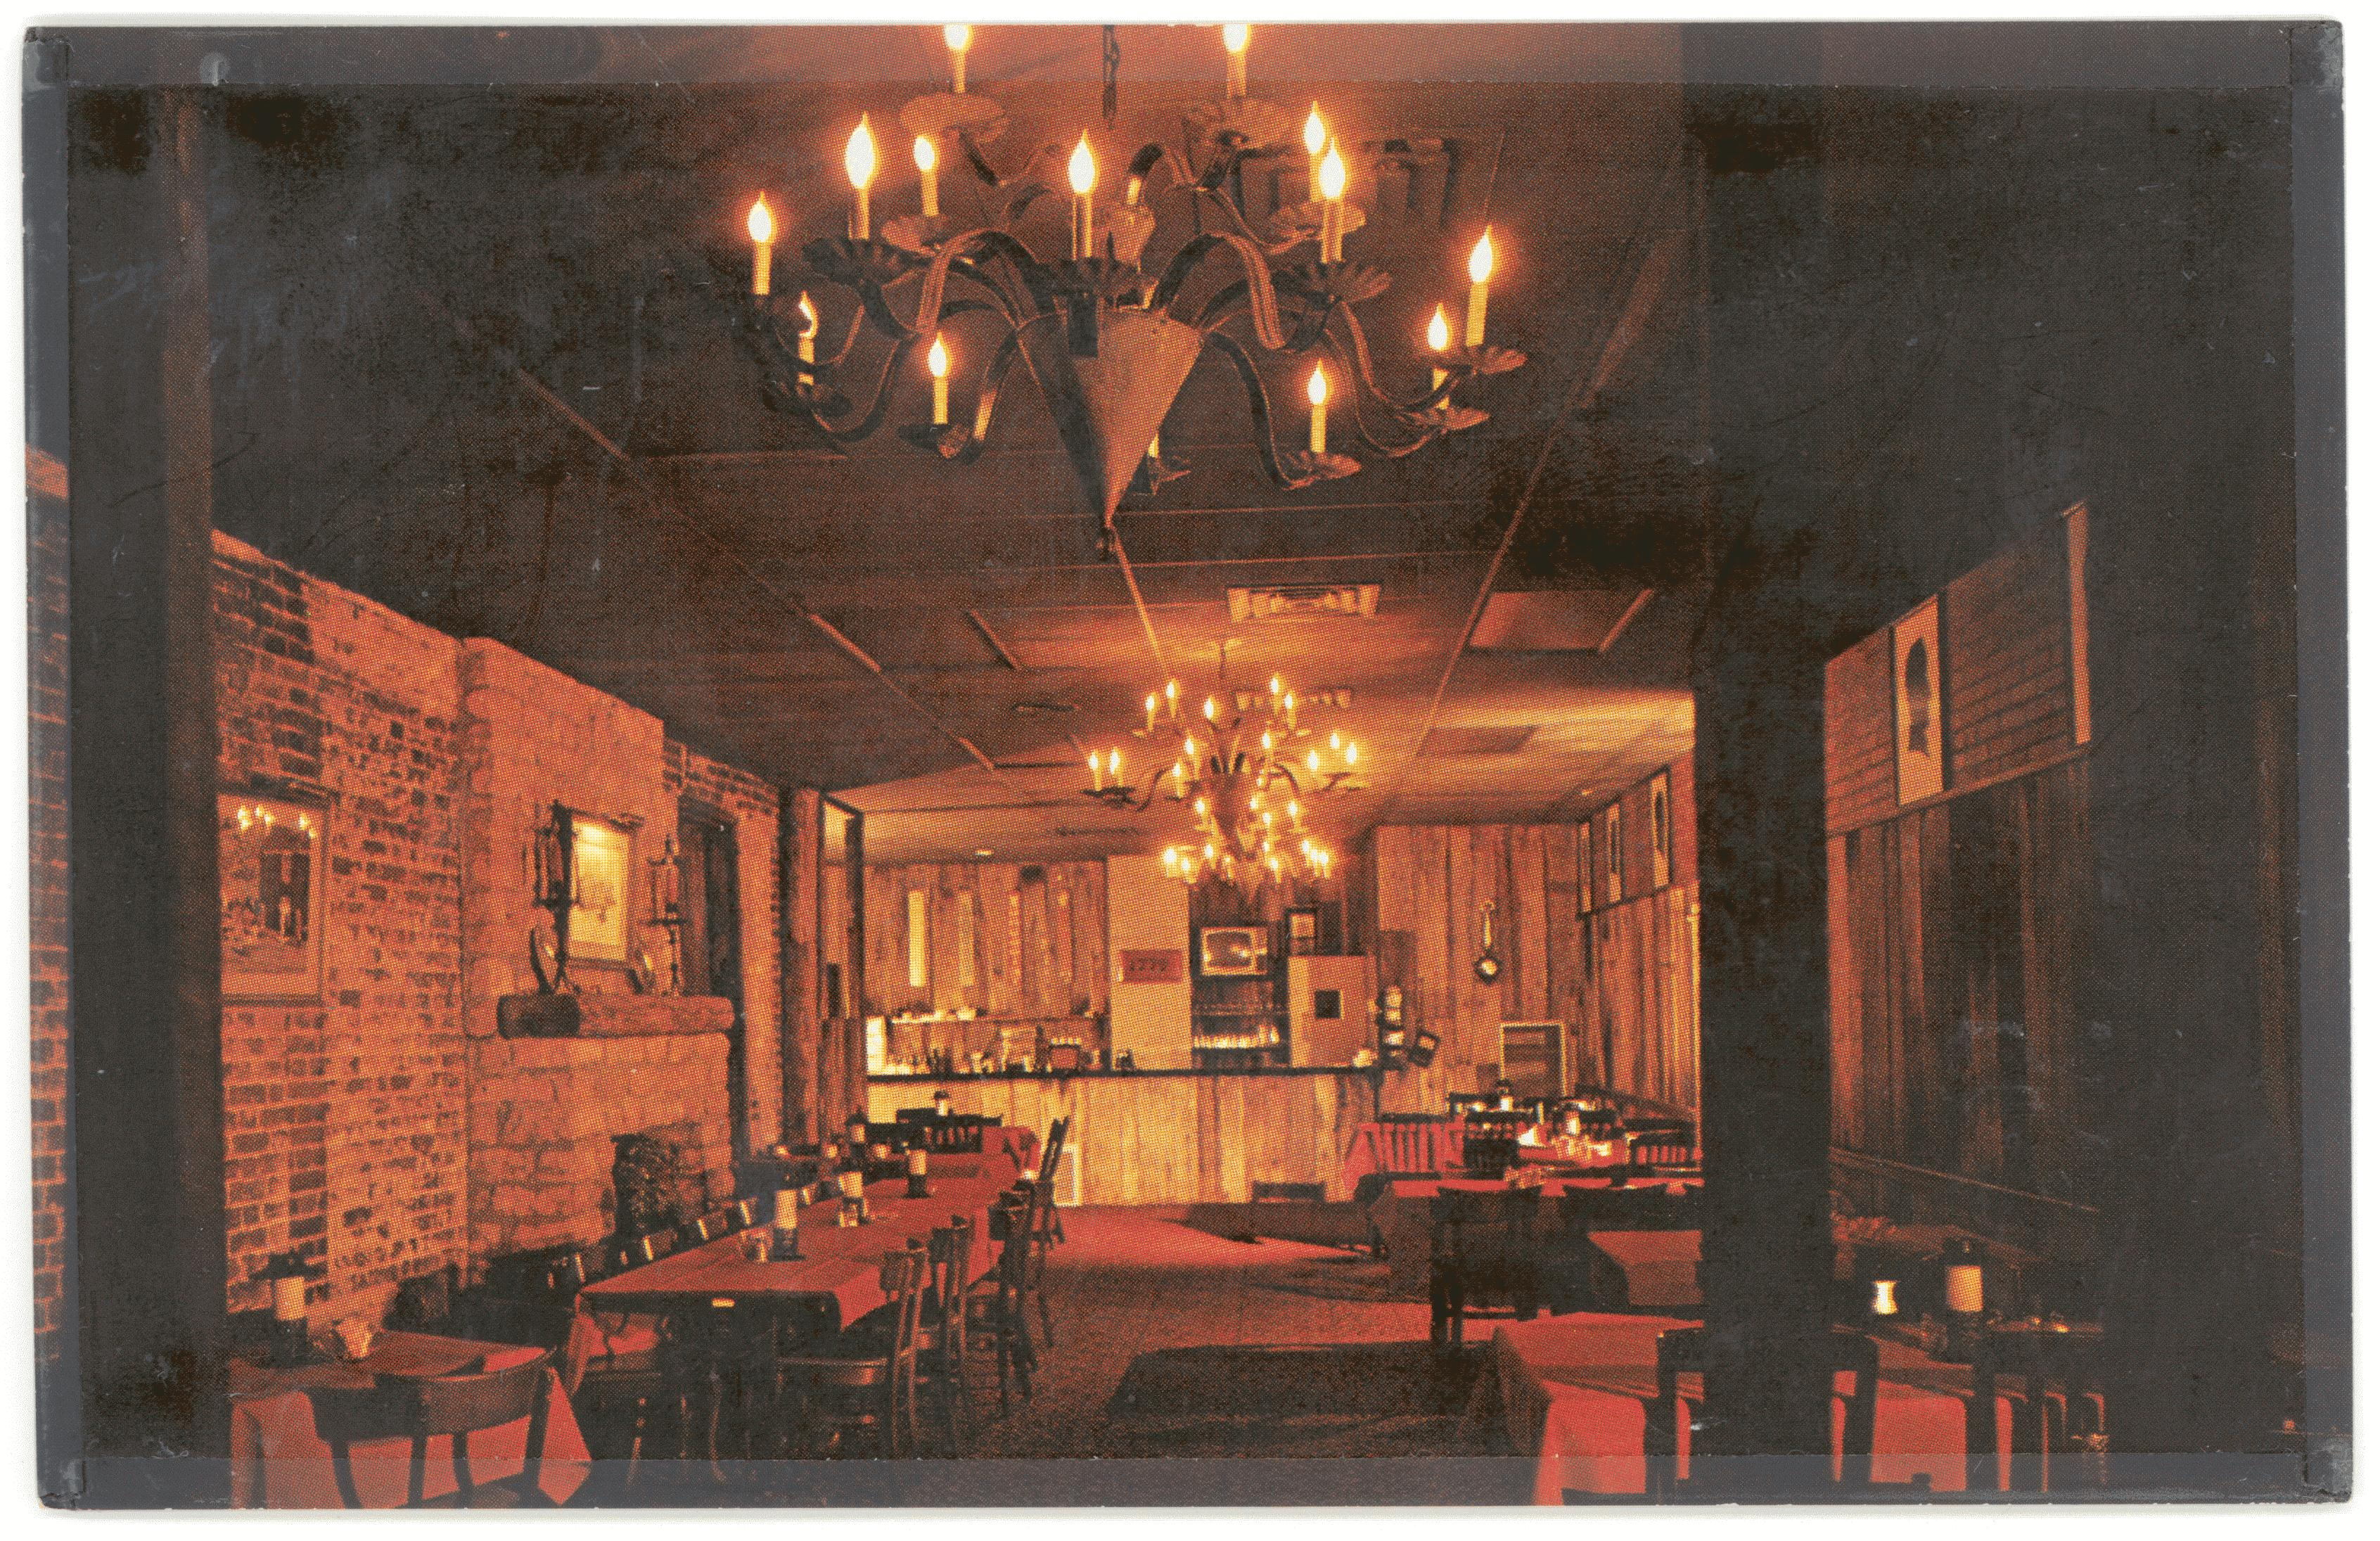 An image of the inside of the same tavern in Bardstown, Kentucky.